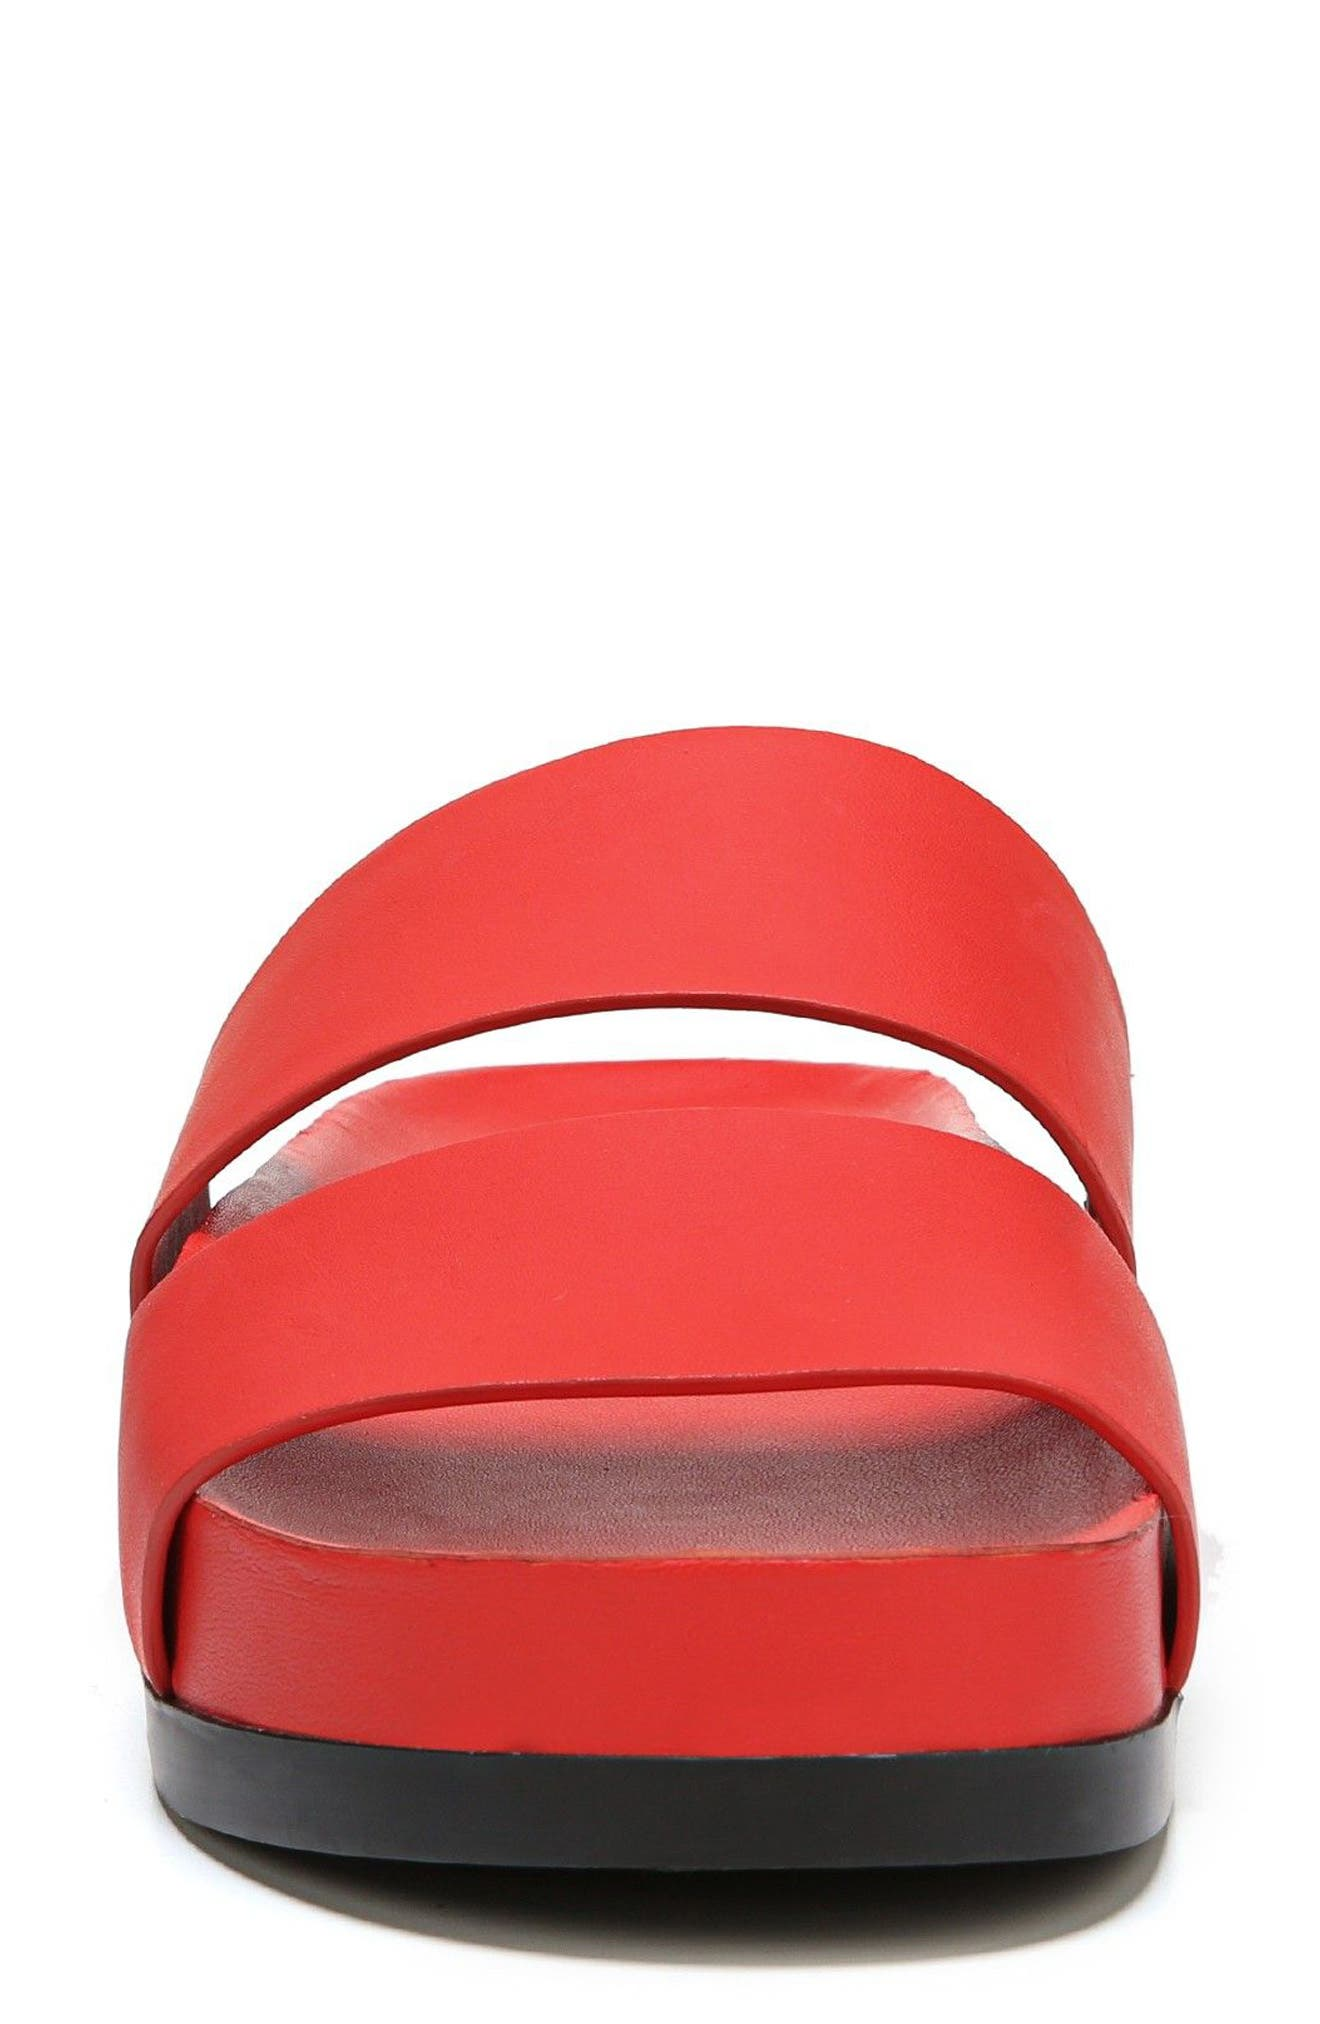 Milton Slide Sandal,                             Alternate thumbnail 4, color,                             Poppy Red Leather